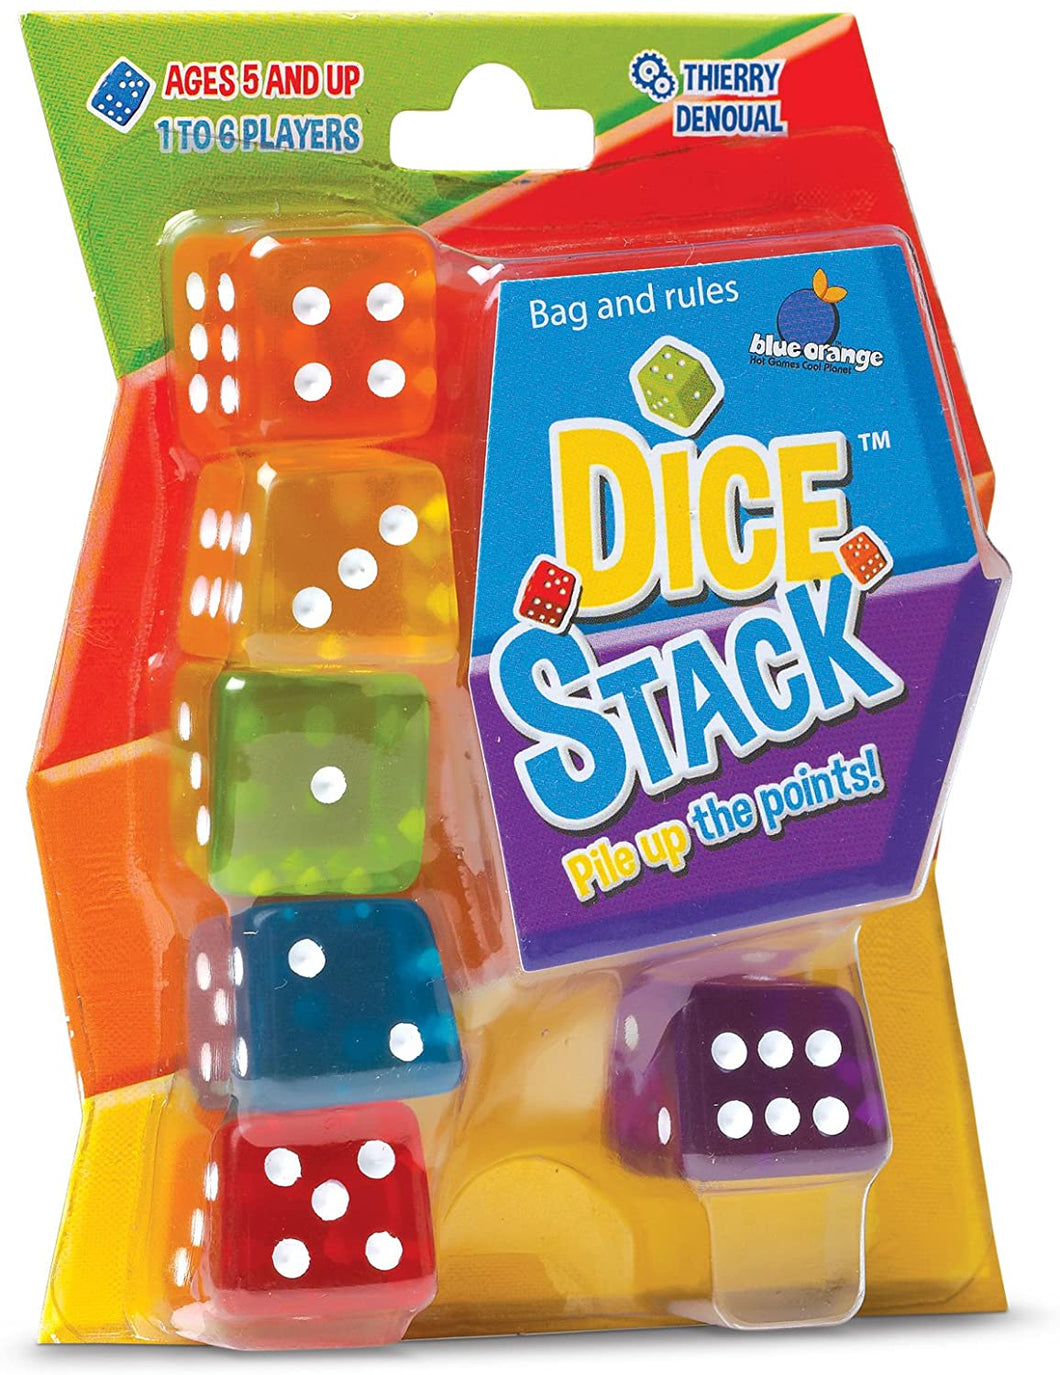 Dice Stack Stacking Dice Game for Kids